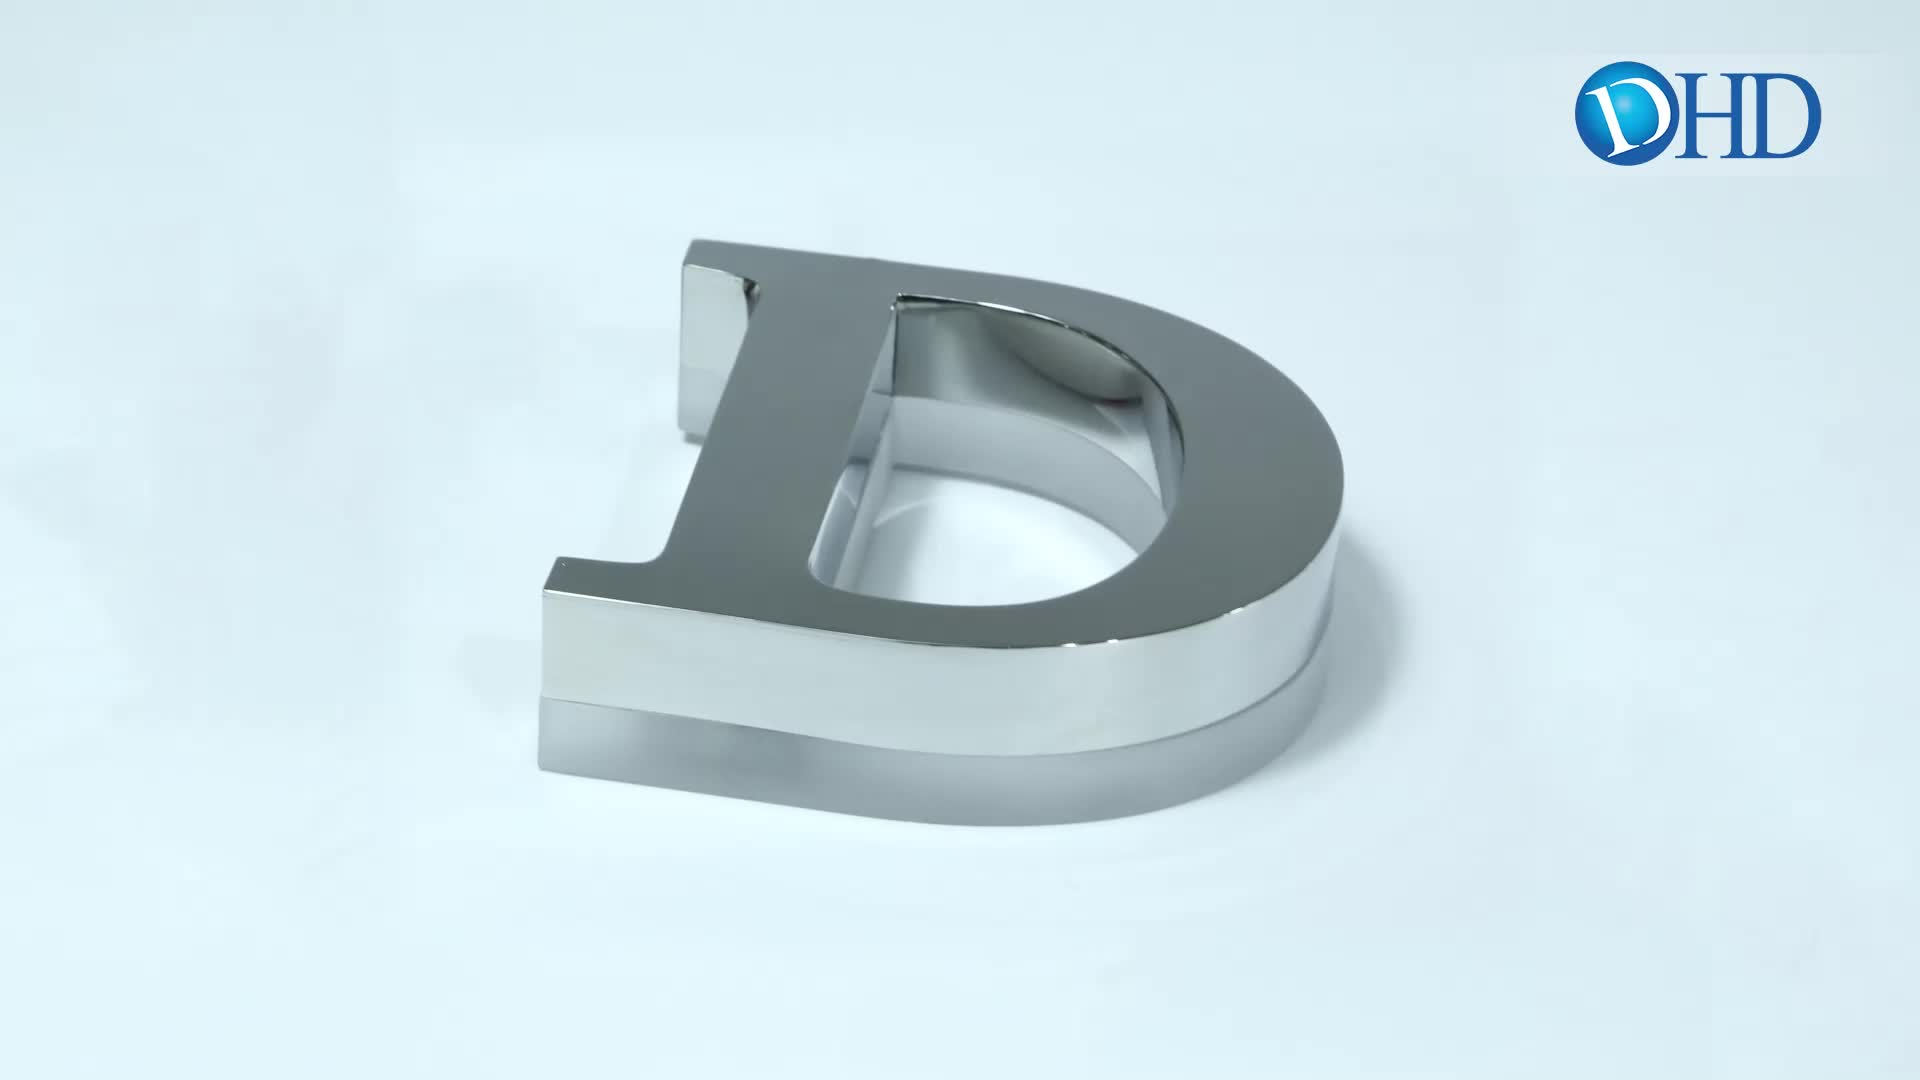 Waterproof 304 stainless steel 3D logo letter led backlit sign